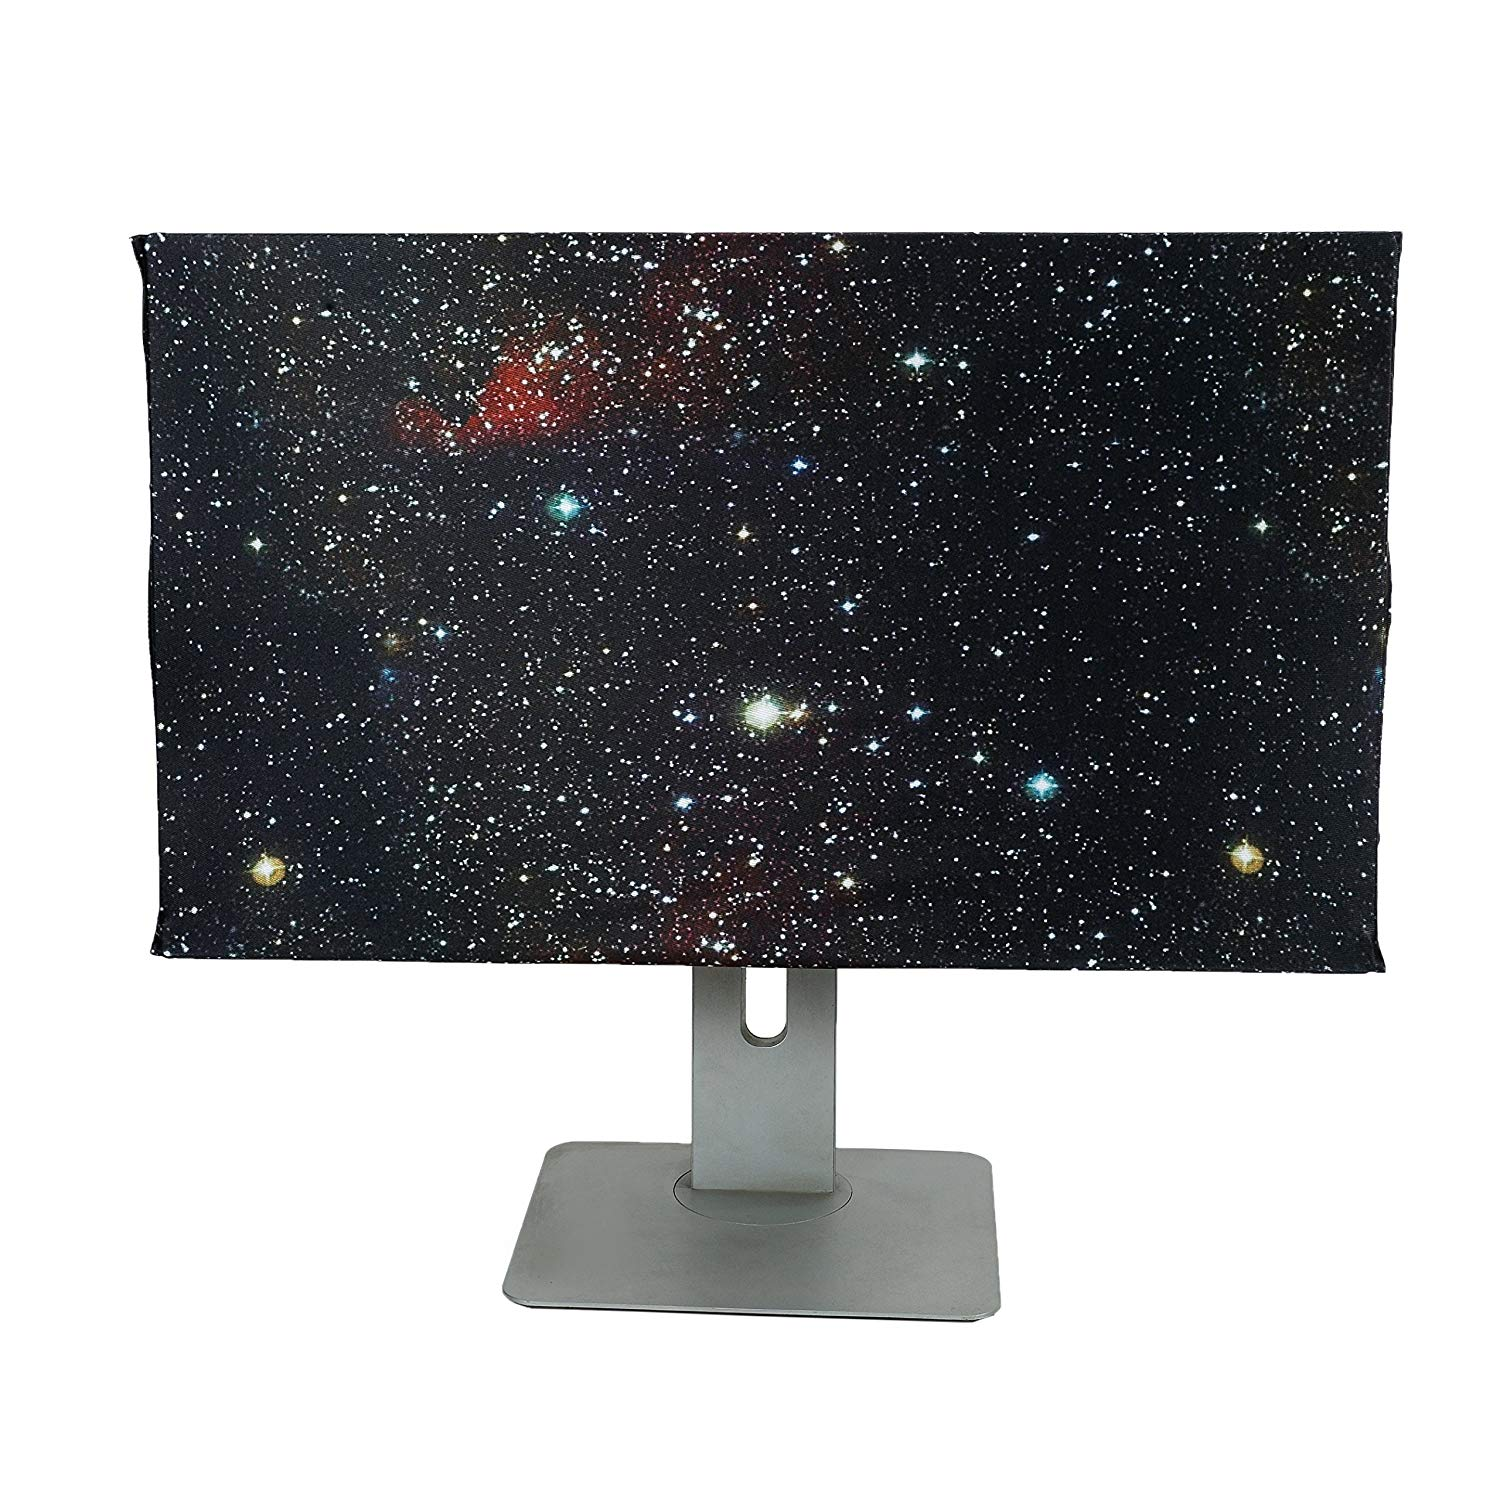 2 PCS Computer Monitor Dust Cover + Keyboard Dust Cover Adjustable Standard Size LCD Monitor Keyboards Silky Smooth Antistatic Vinyl Purple Blue Star Space Pattern DNZ02 (black)